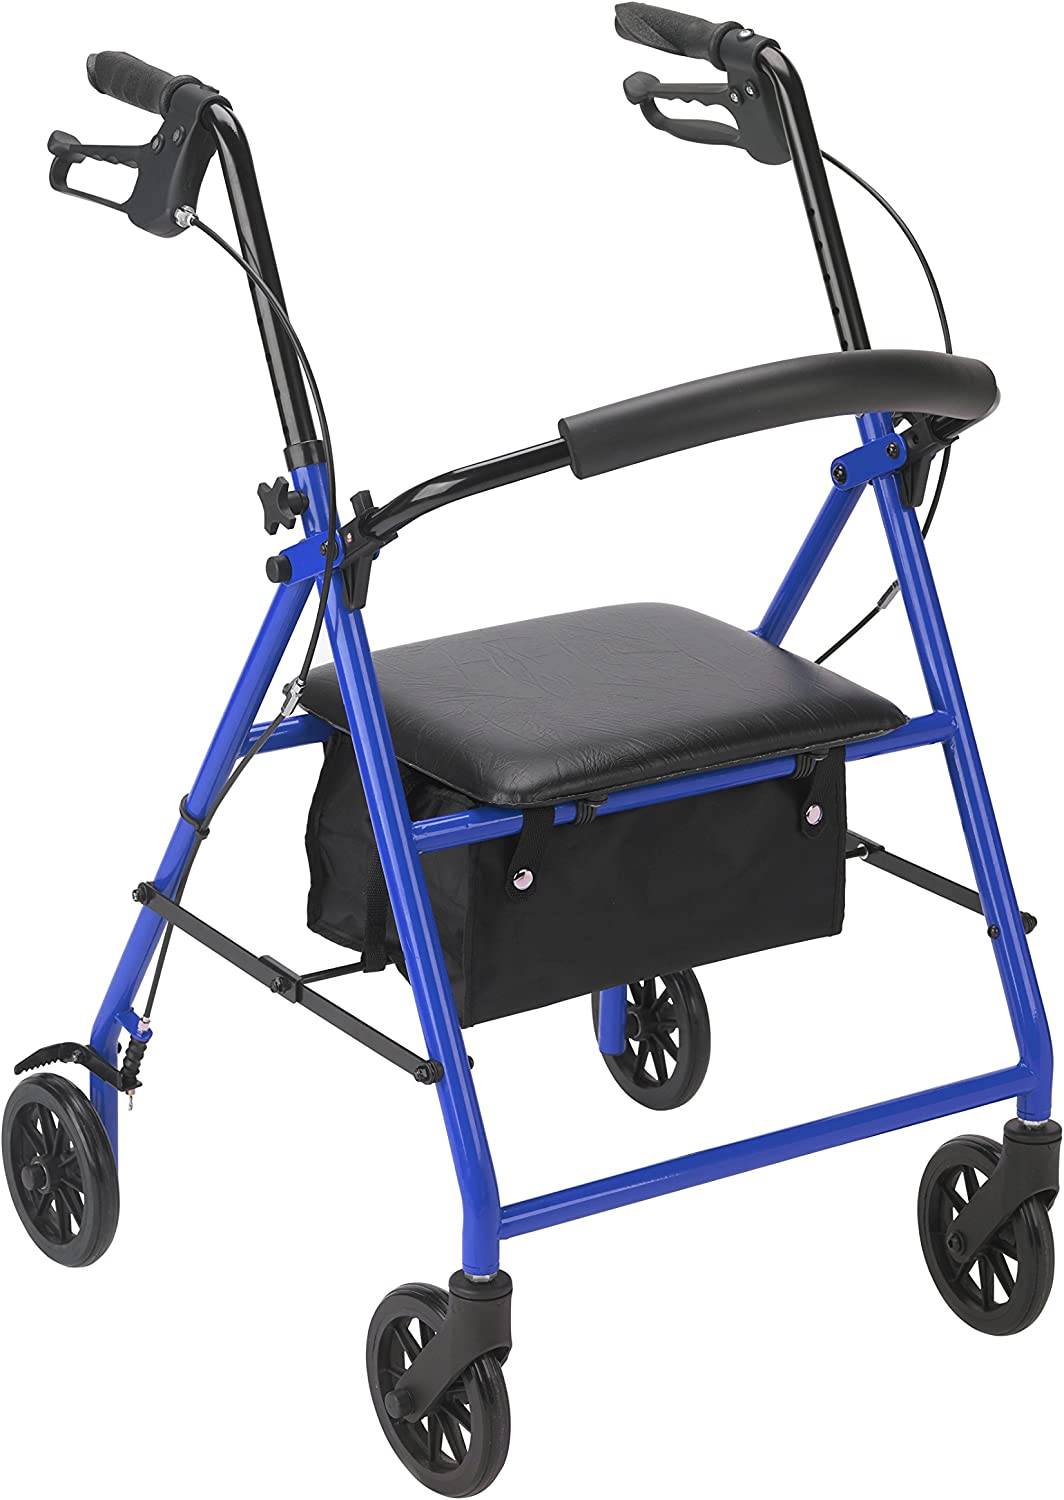 Drive Medical Rollator with Wheels, Blue 81oYp5PlbuL